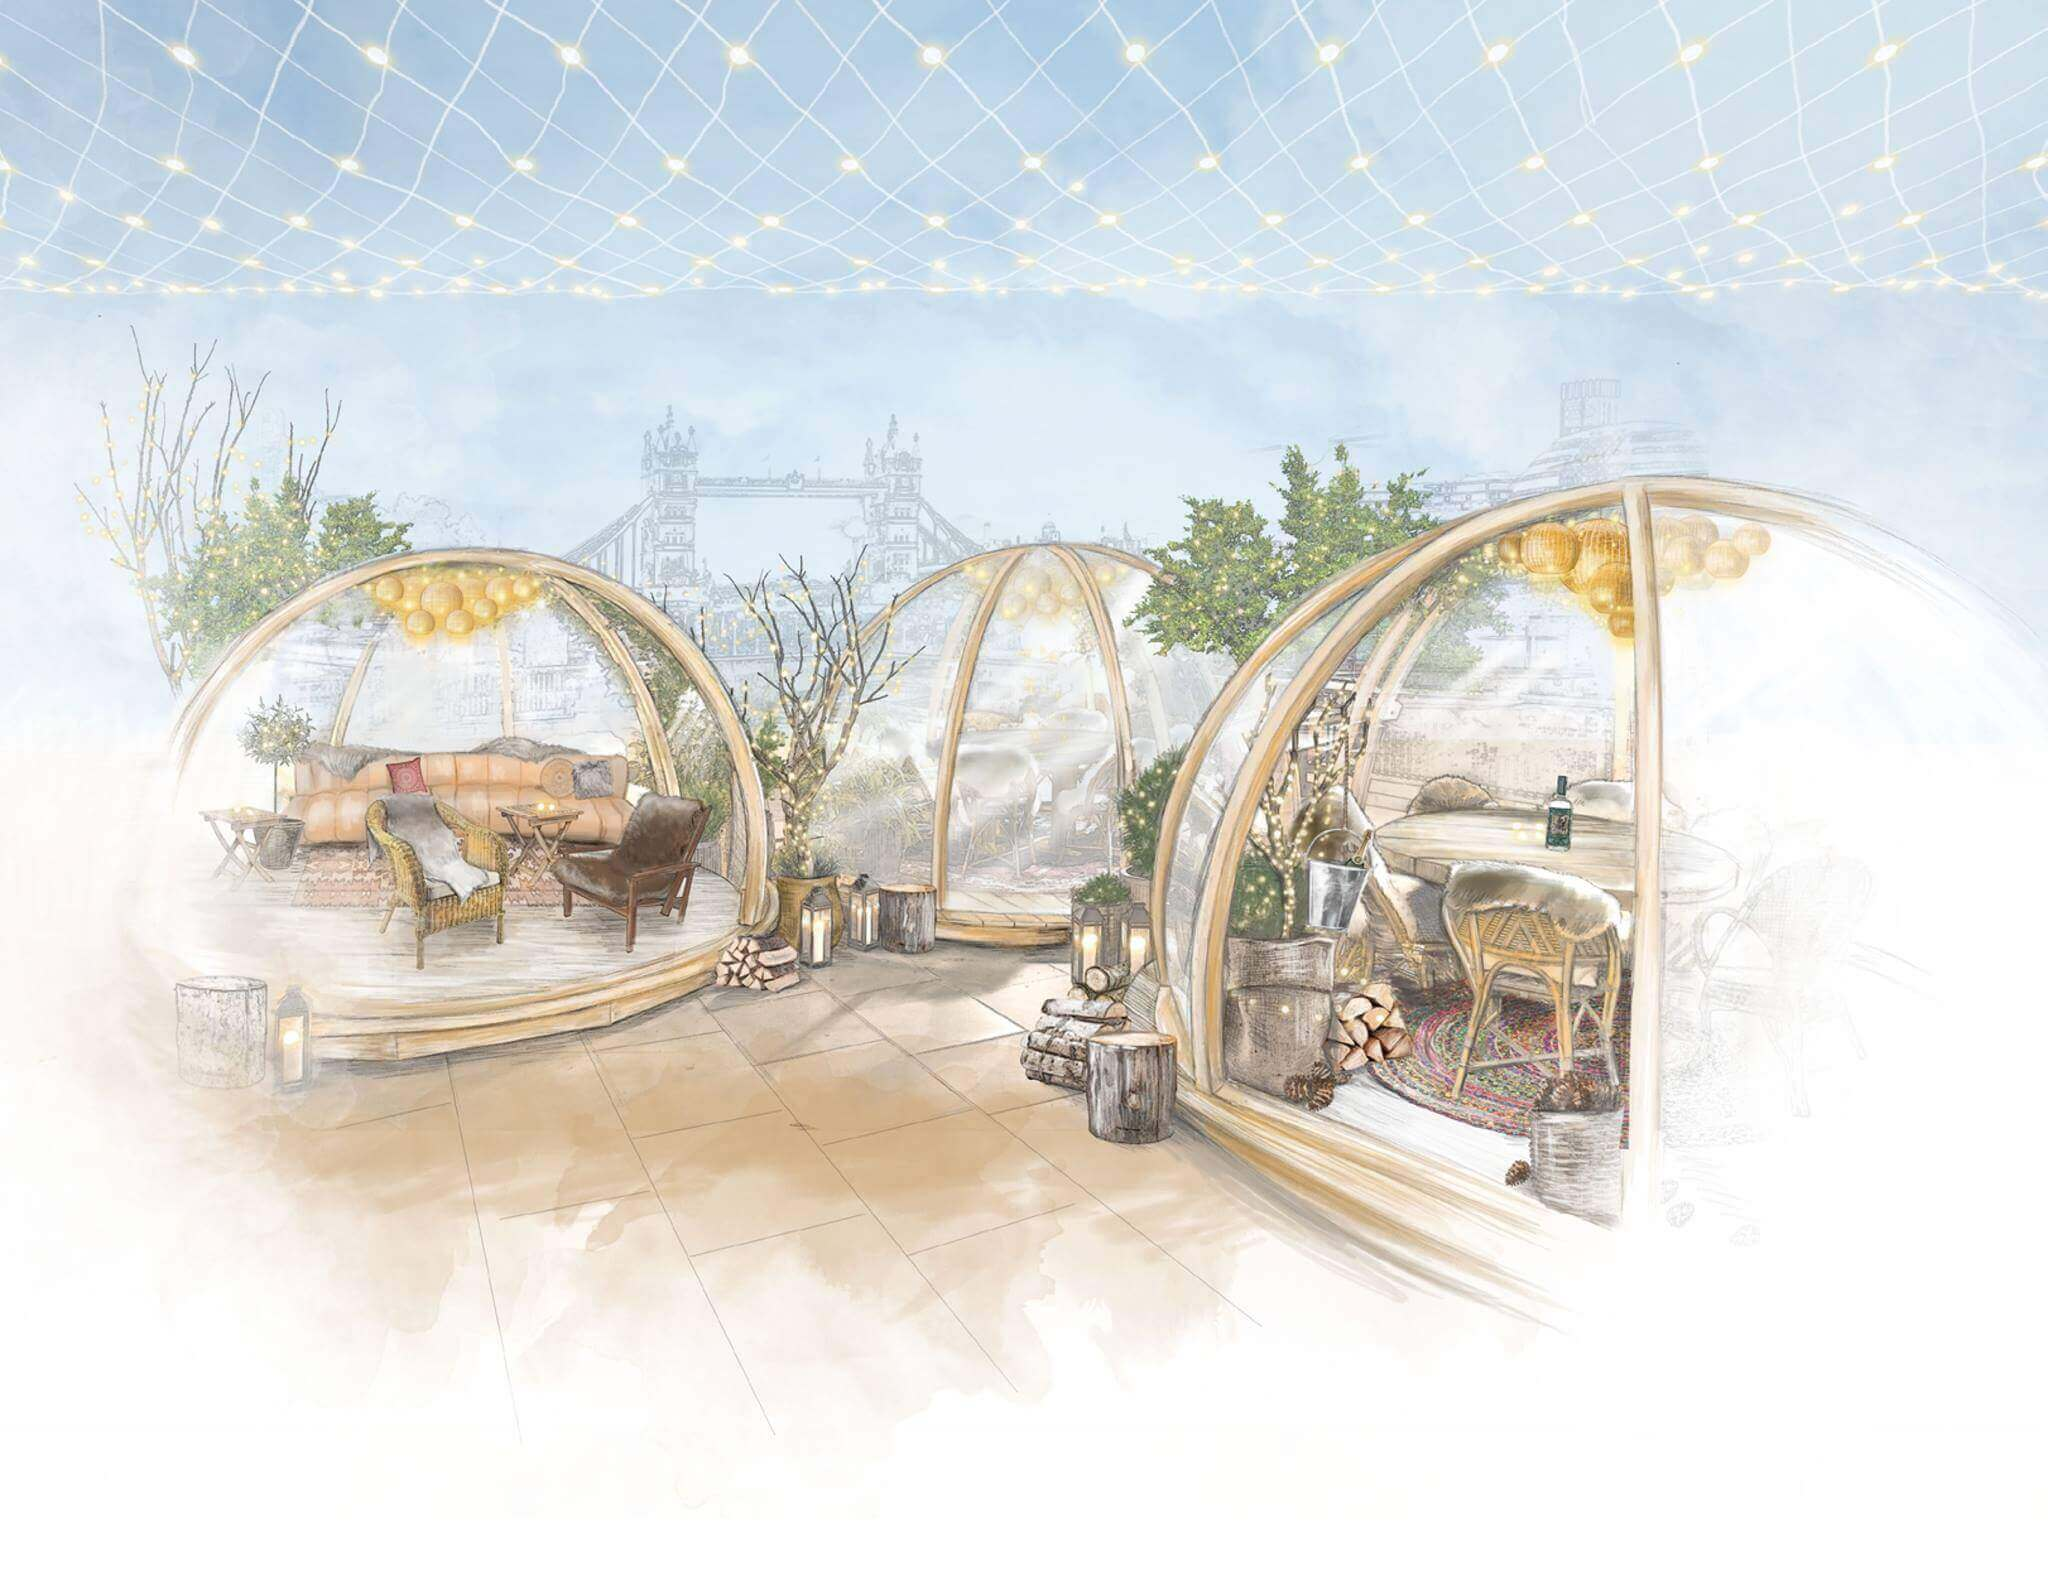 Drawing of the Igloos